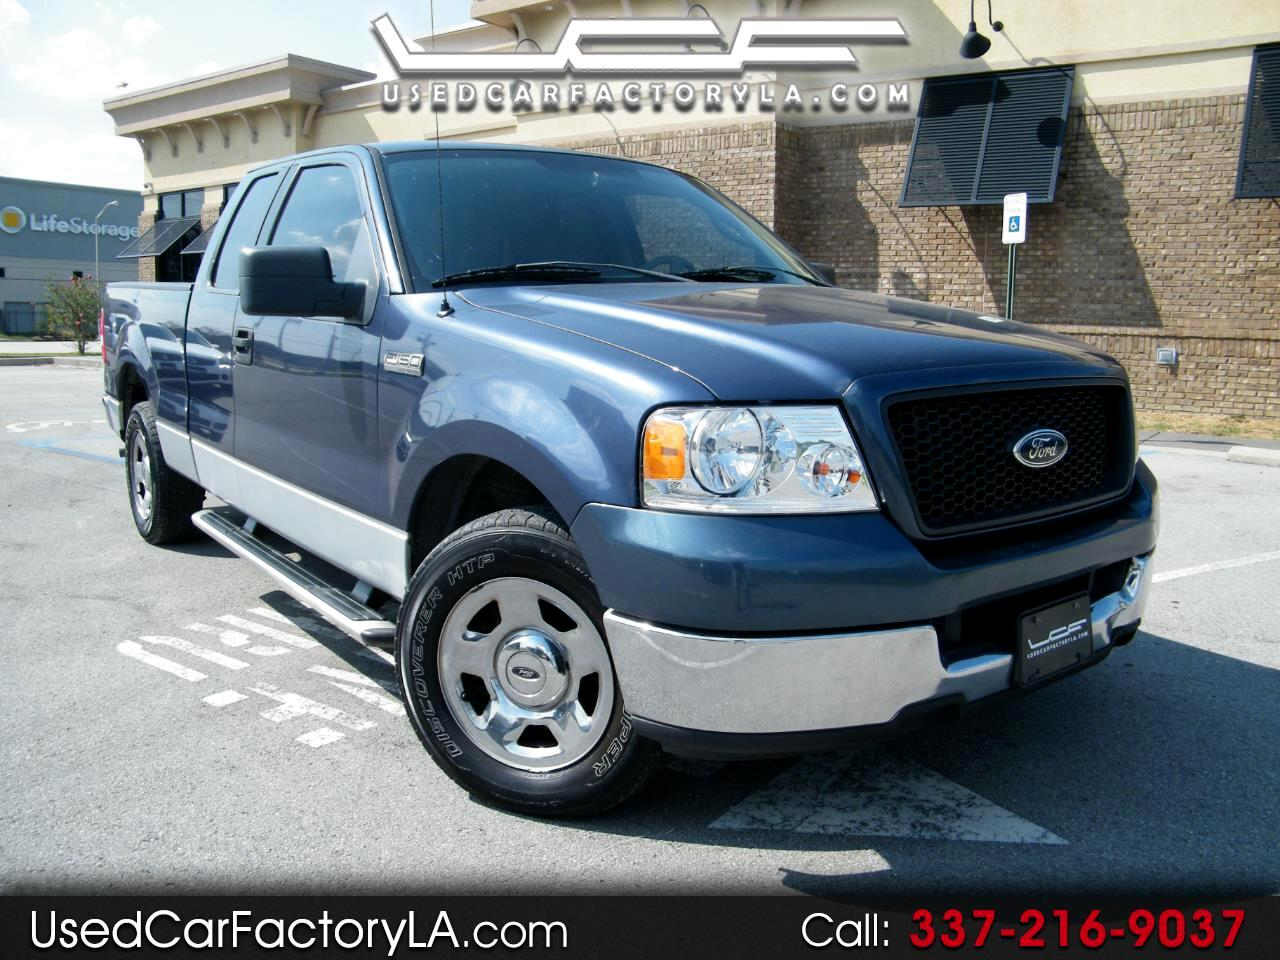 Ford F-150 XLT SuperCab 2WD 2005